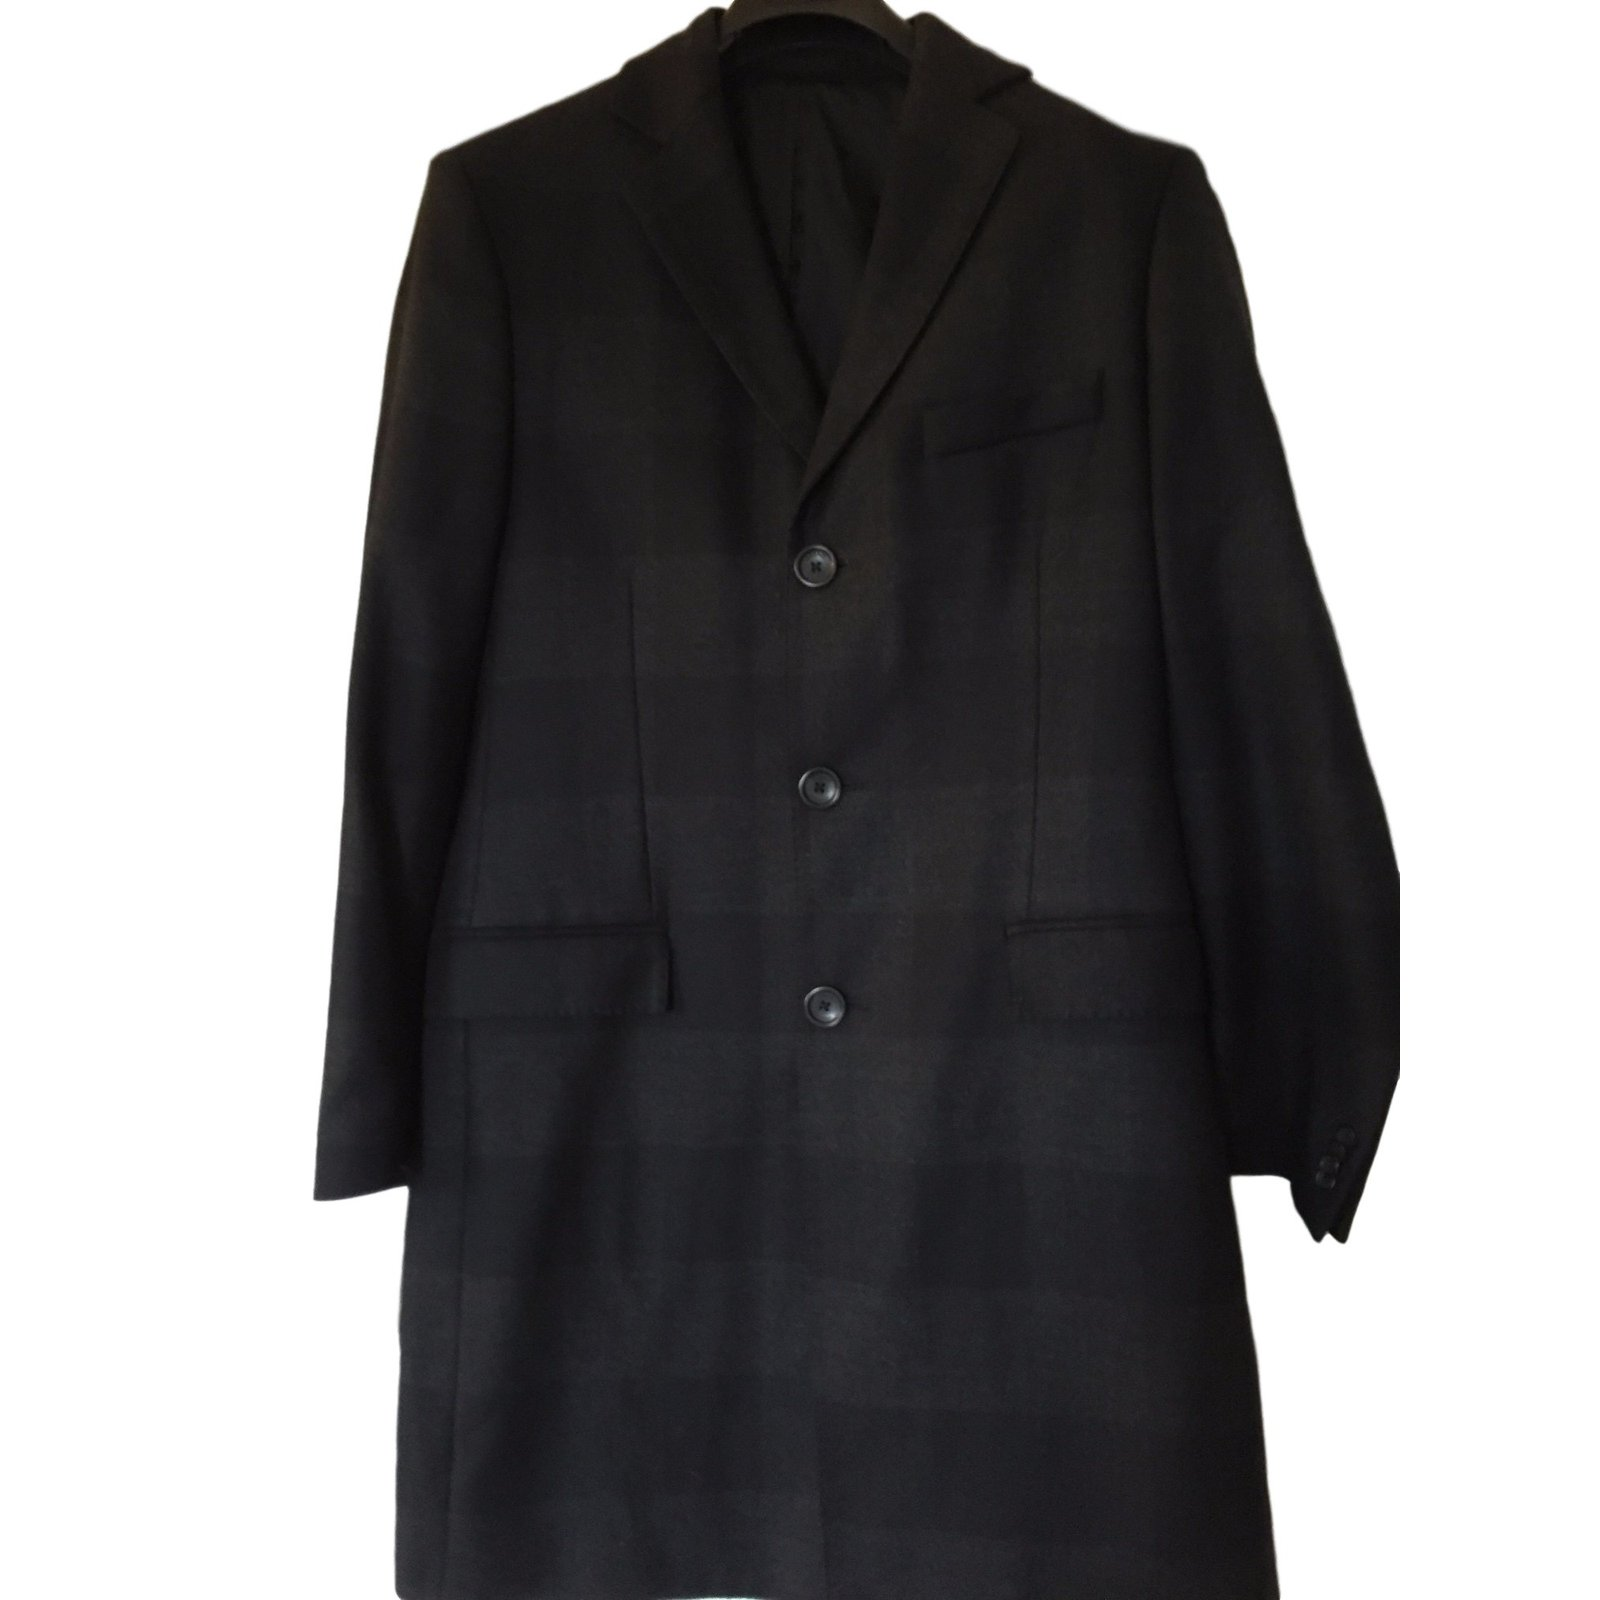 Versace Coat Men Coats Outerwear Wool Black ref.24349 - Joli Closet